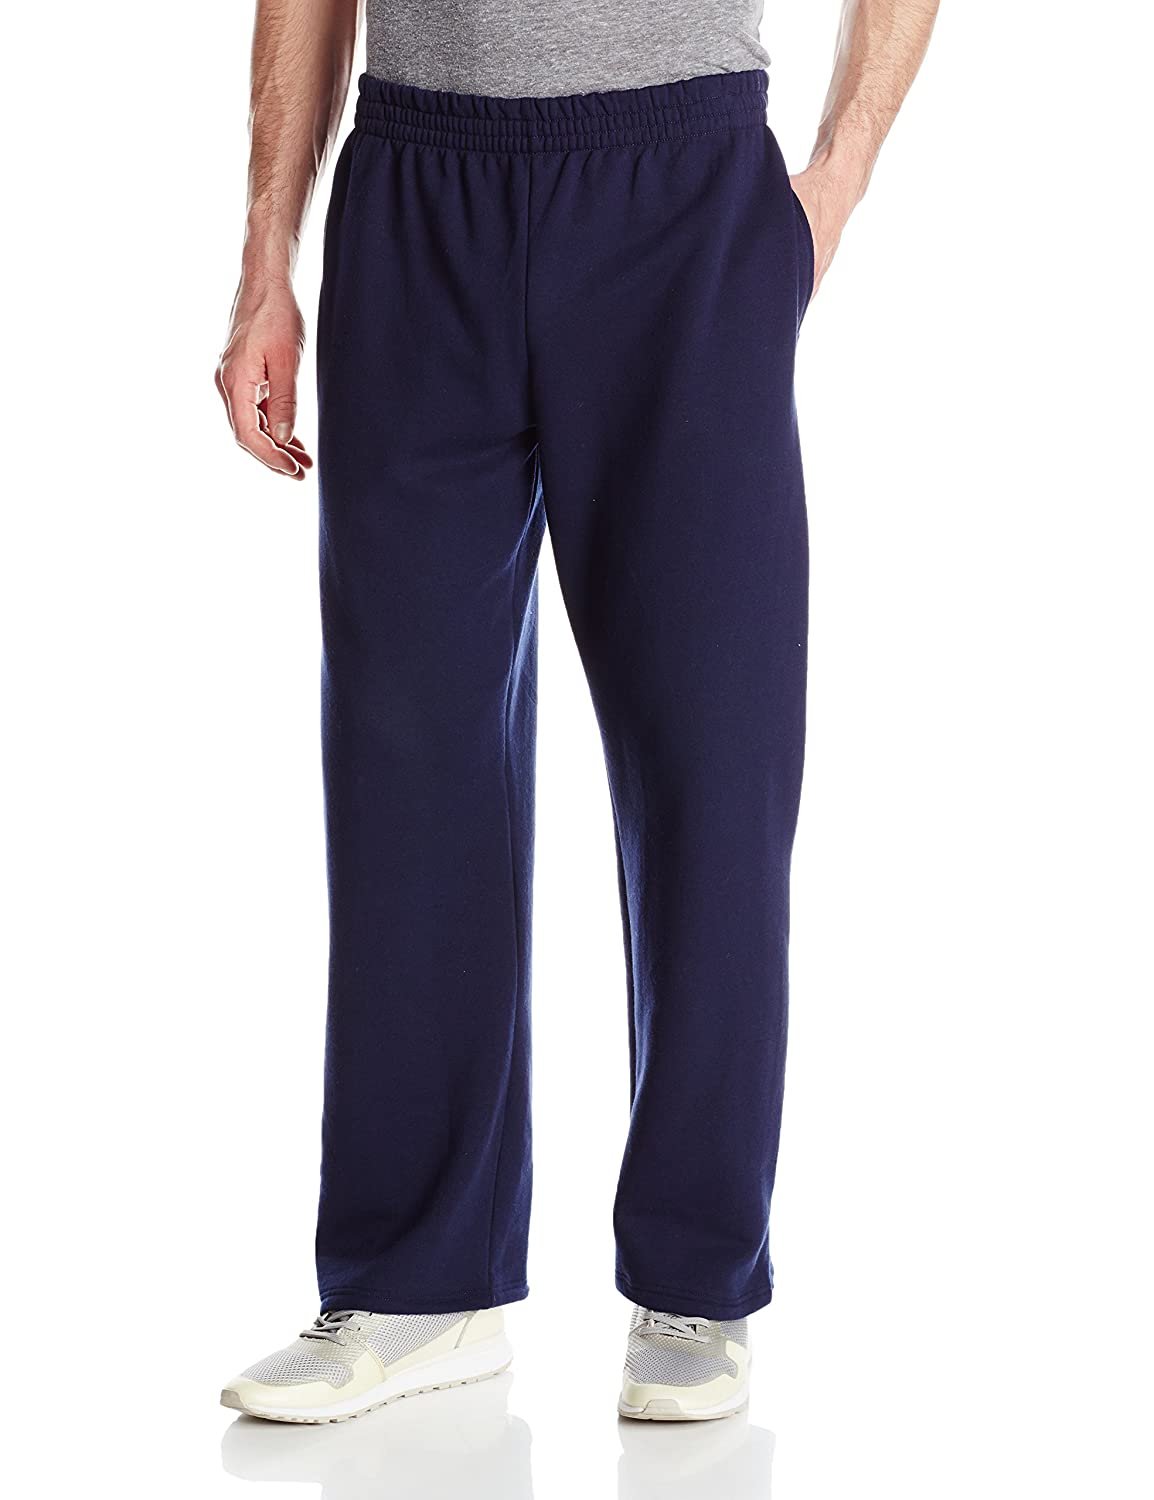 Fruit of the Loom Men's Pocketed Open-Bottom Sweatpants RSF74R